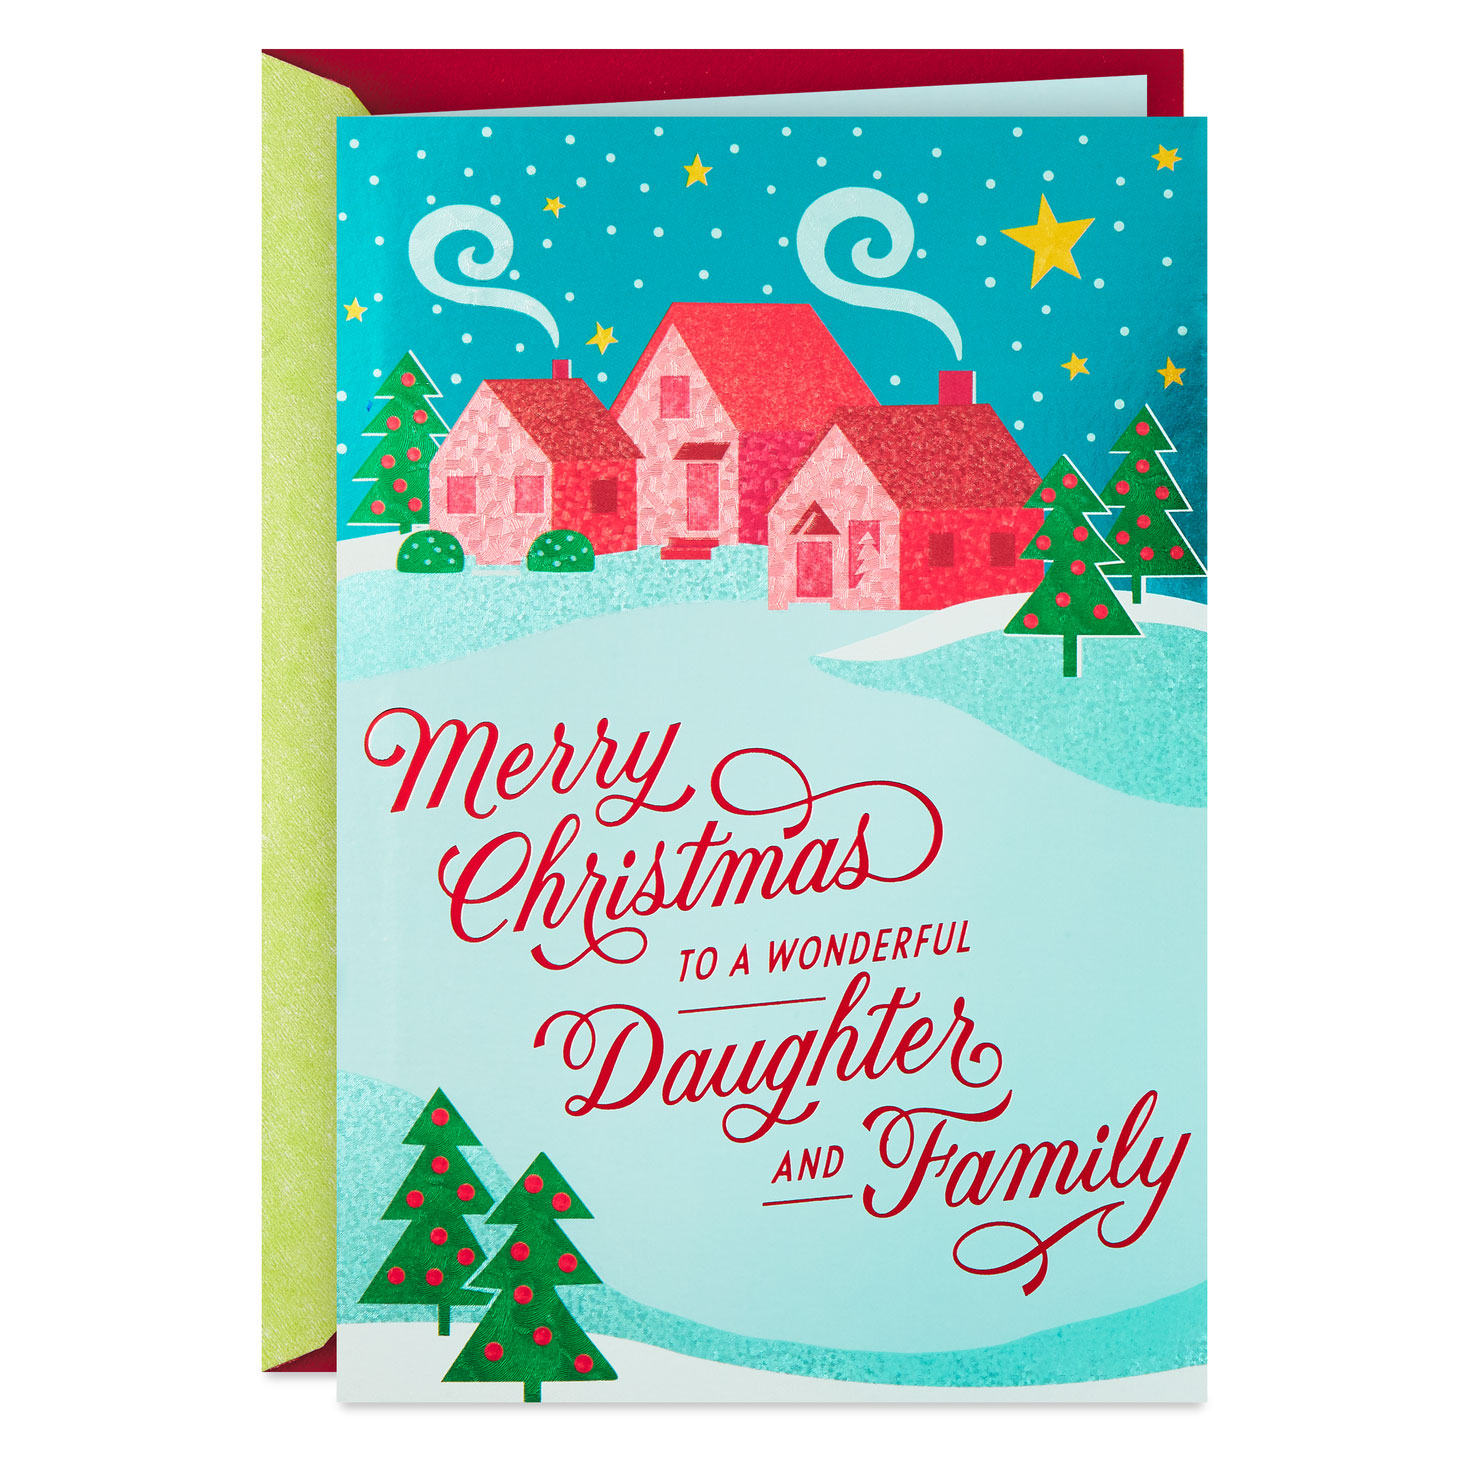 wishing you love christmas card for daughter and family